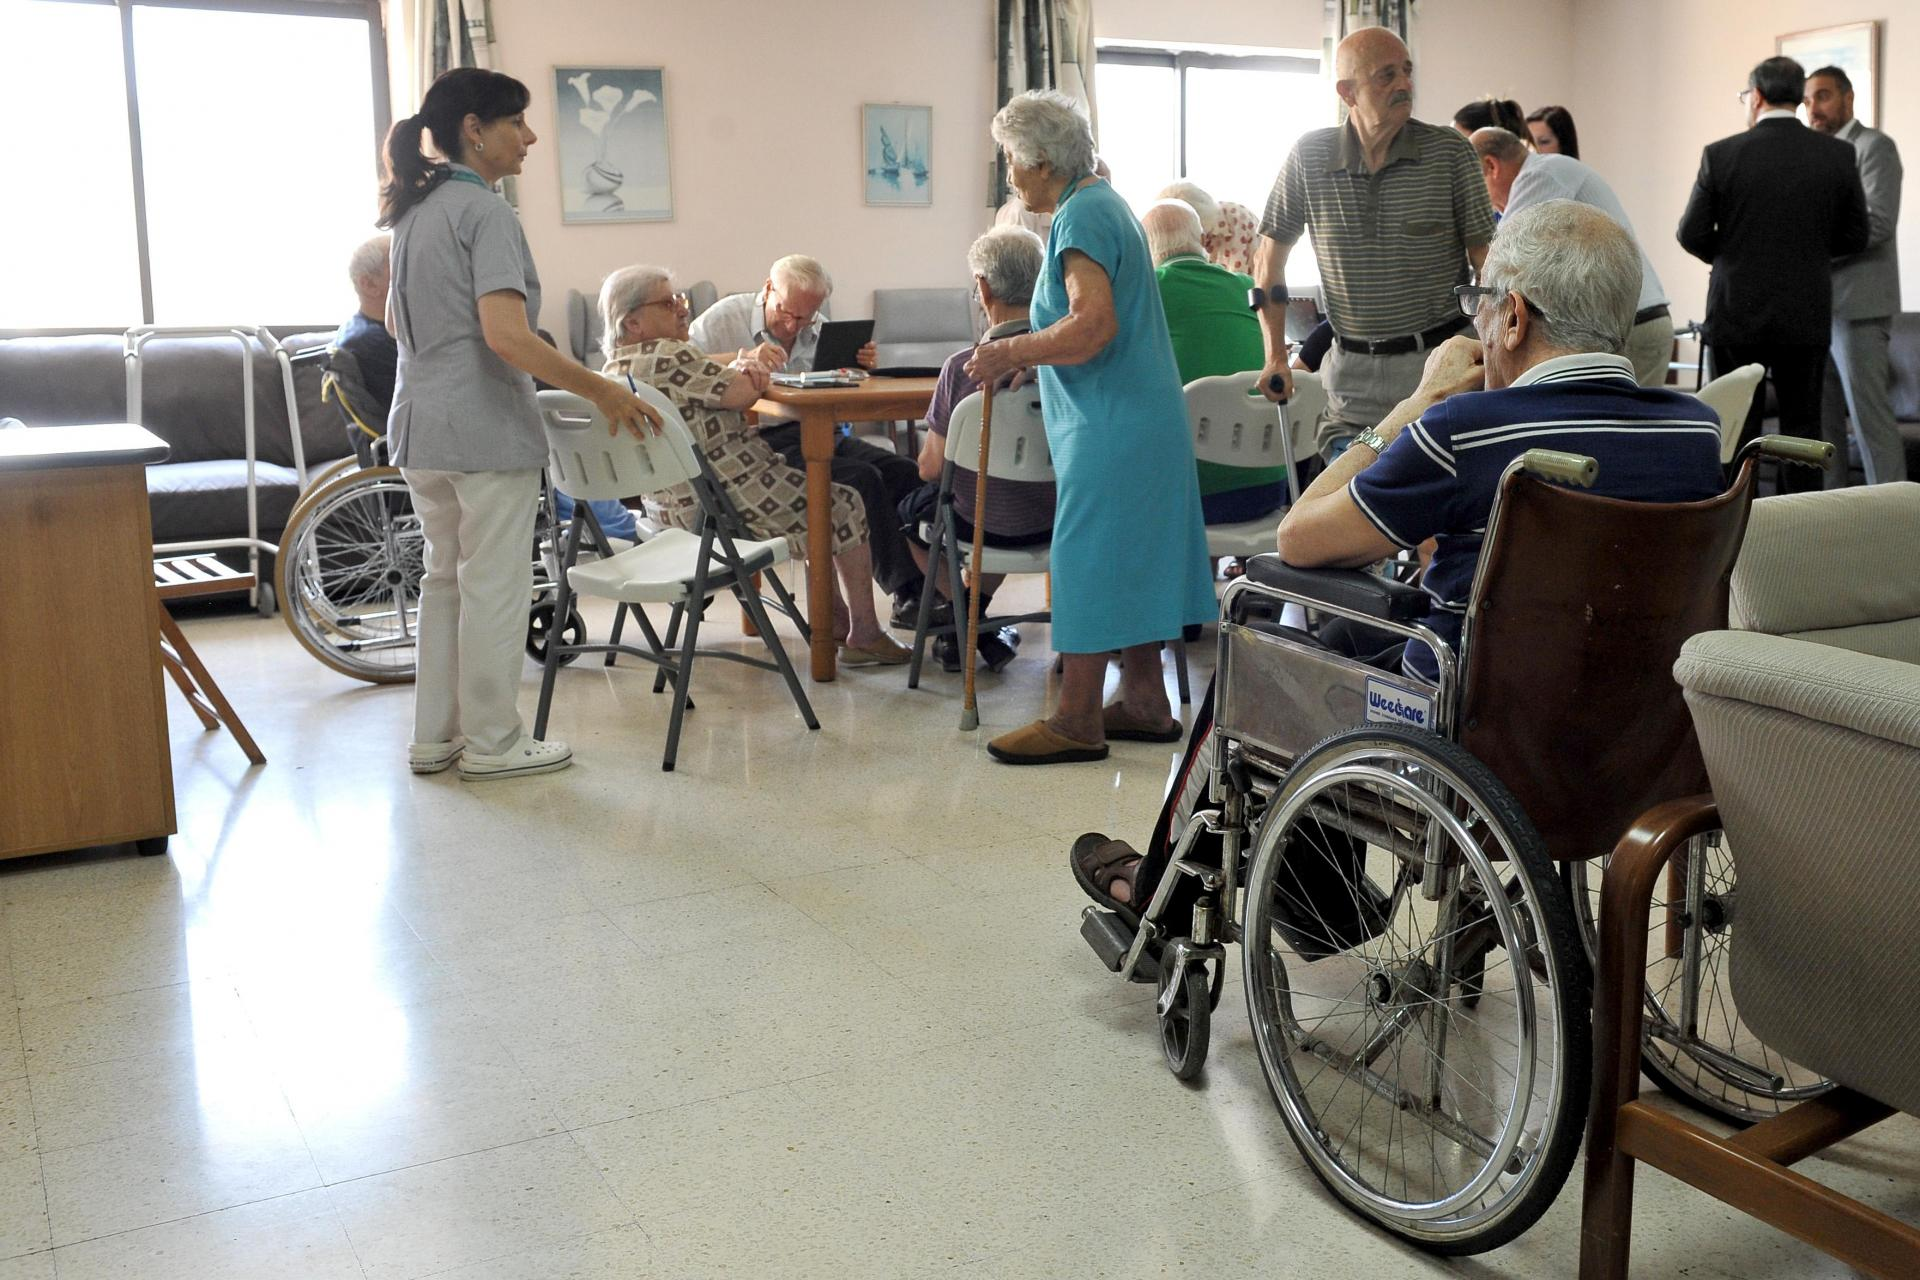 MoU to ensure higher standards, protection of rights for the elderly